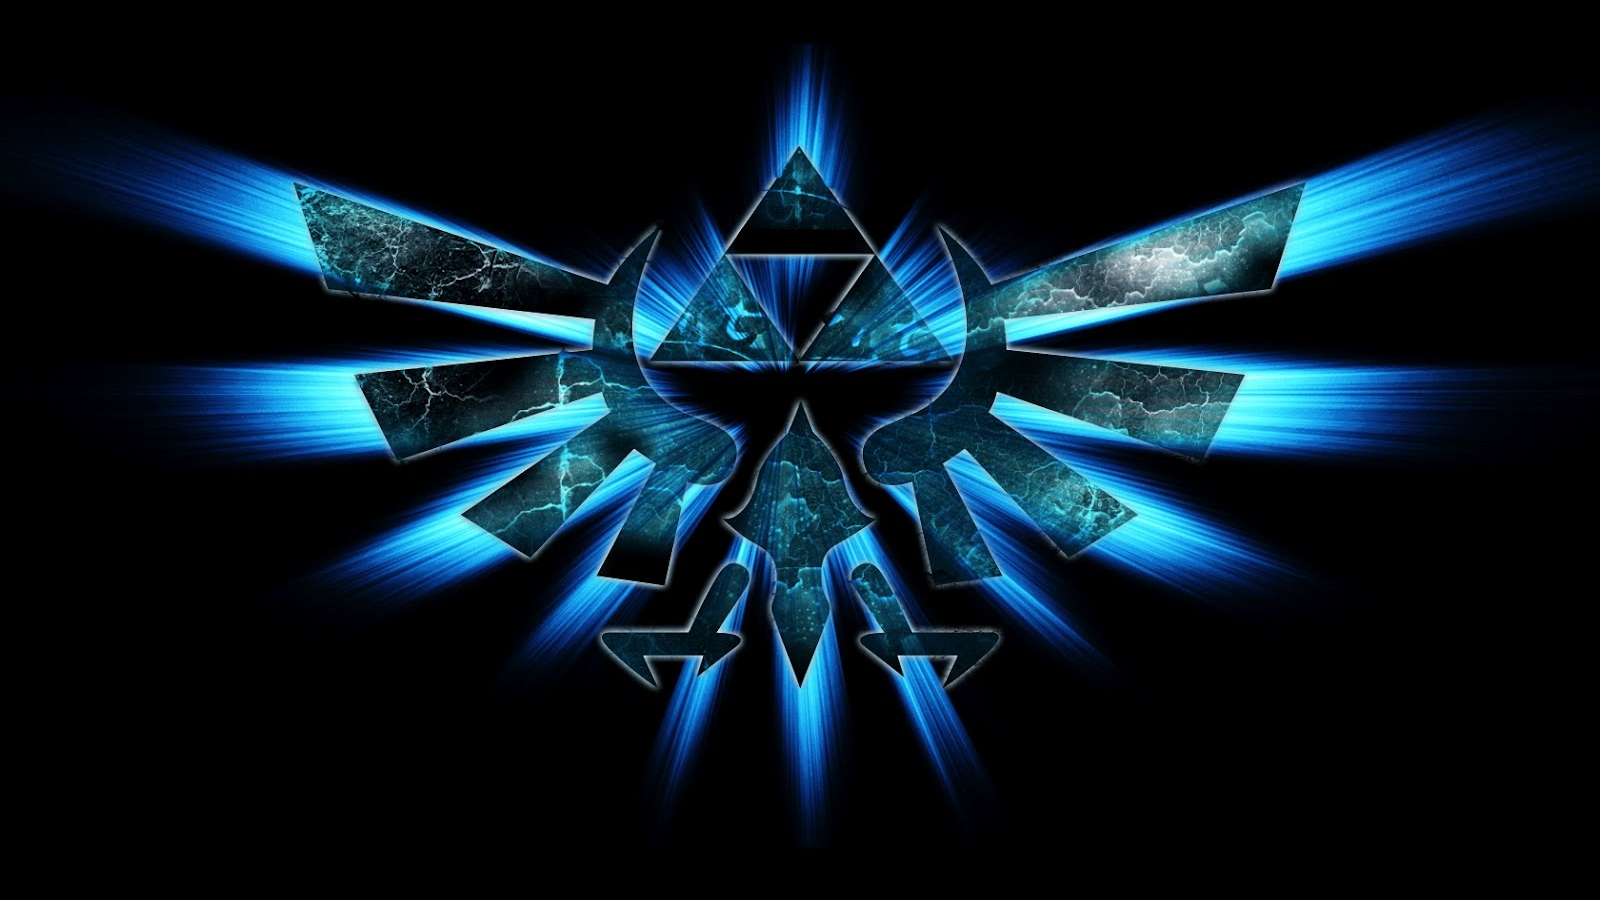 Hd Gaming Background Posted By Ethan Anderson